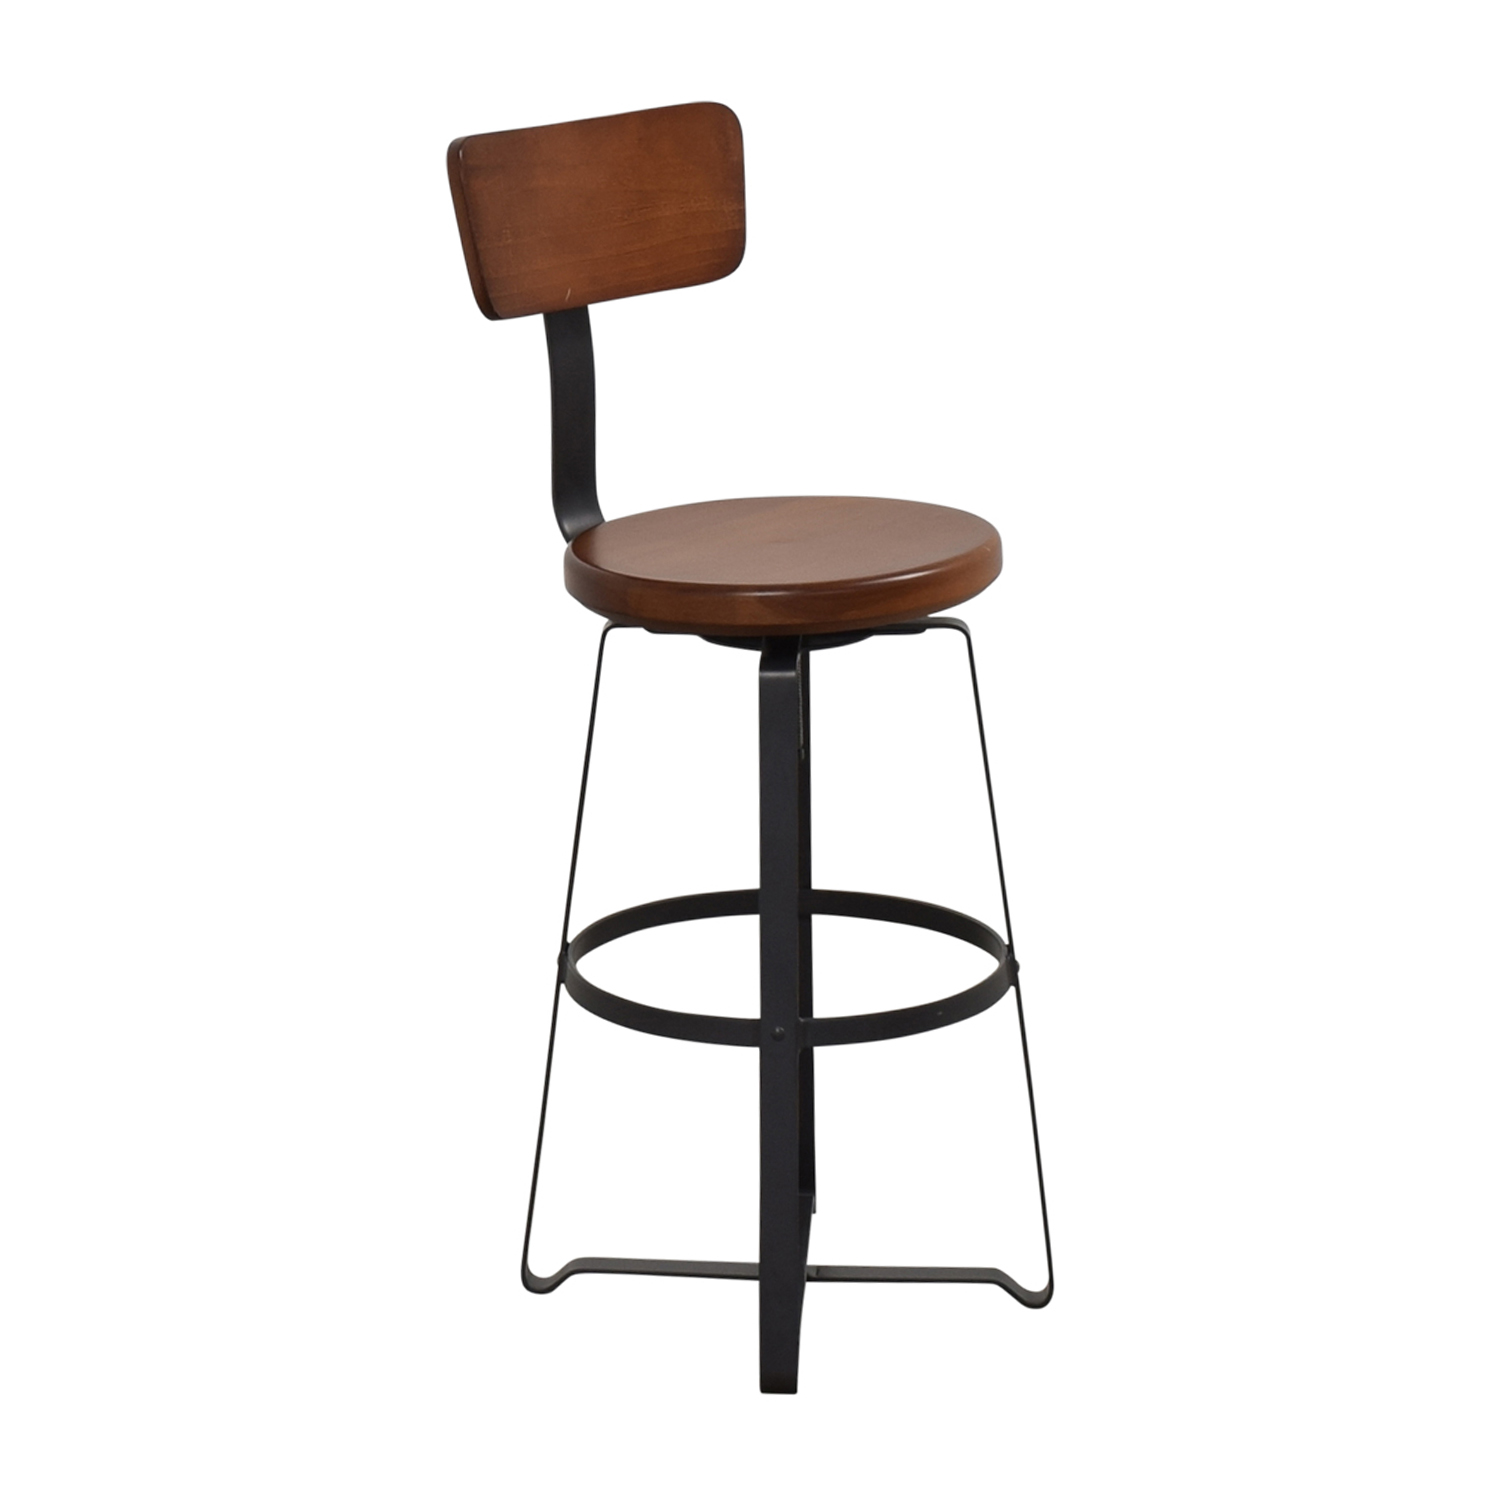 West Elm West Elm Adjustable Industrial Swivel Stool ct